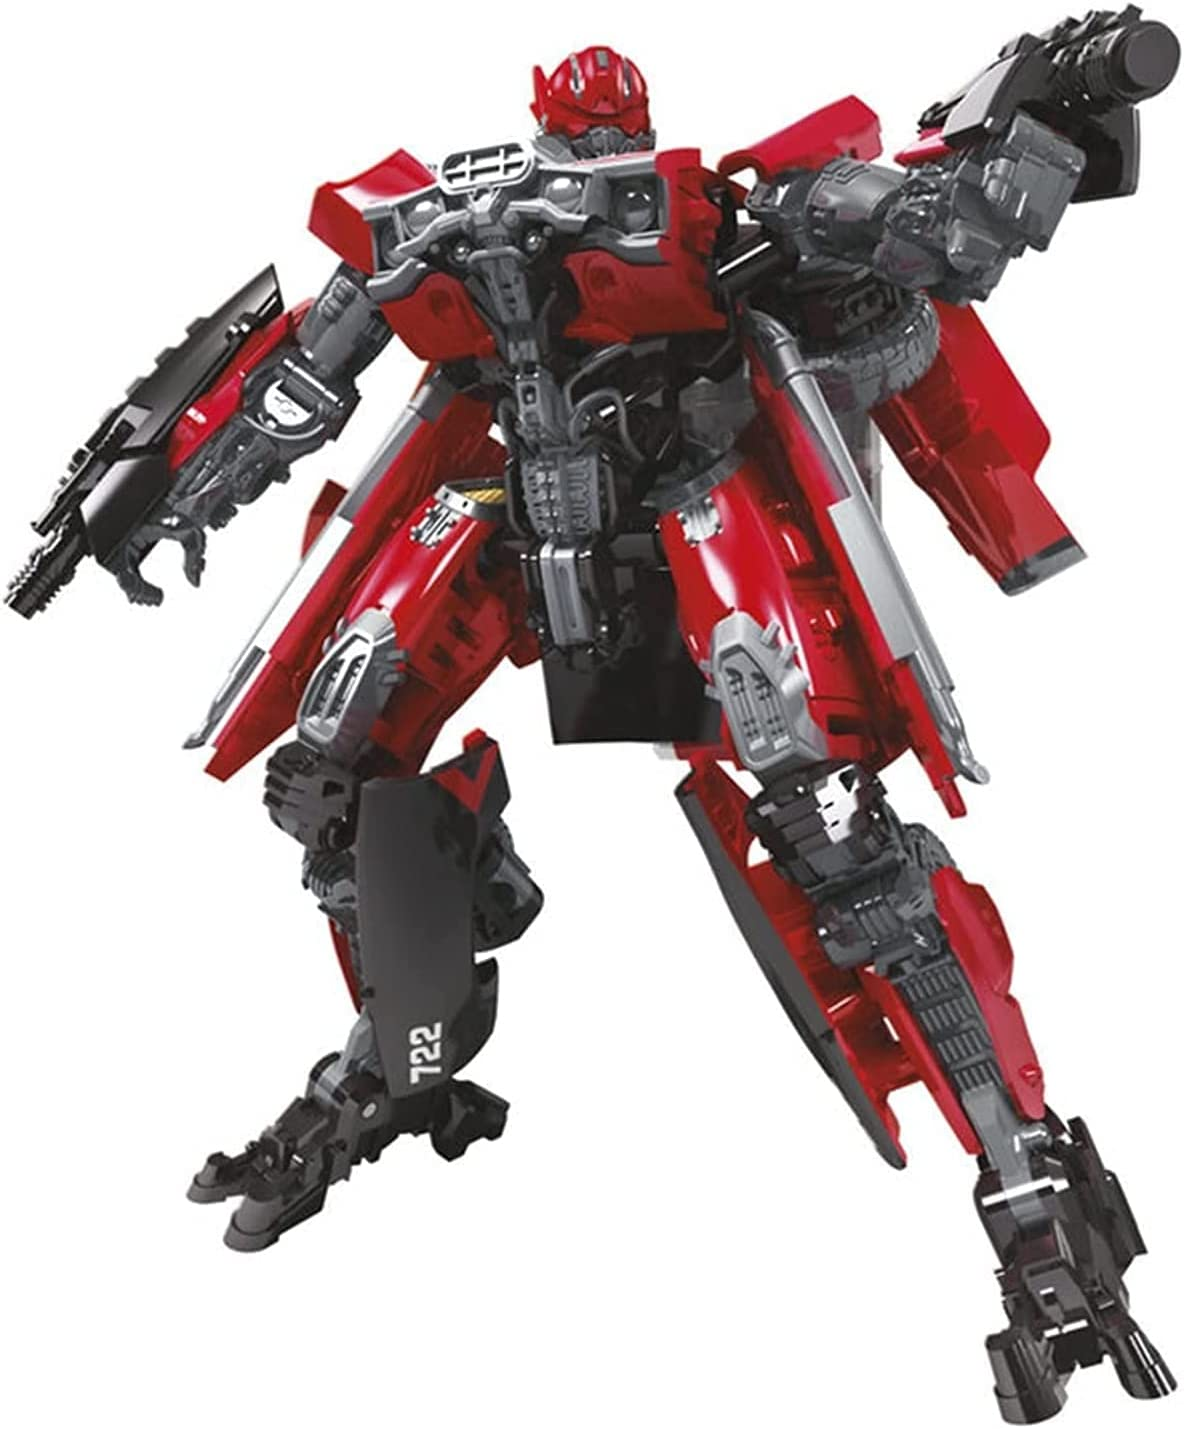 RSVPhandcrafted Transformer We trust OFFer at cheap prices Toys Studio Clas Deluxe Series-SS40